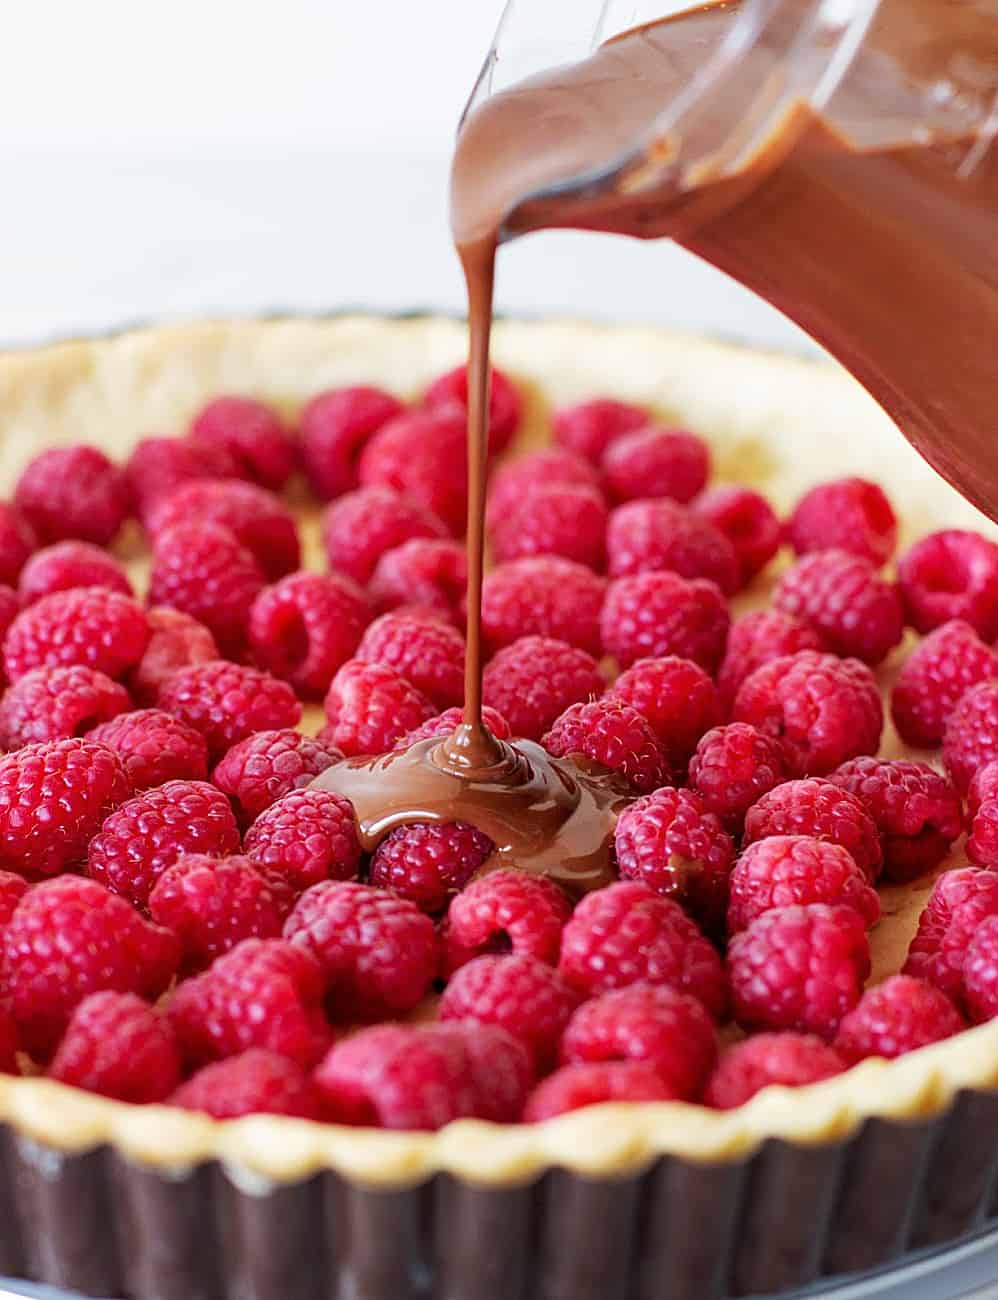 Pouring chocolate filling onto tart crust filled with fresh raspberries